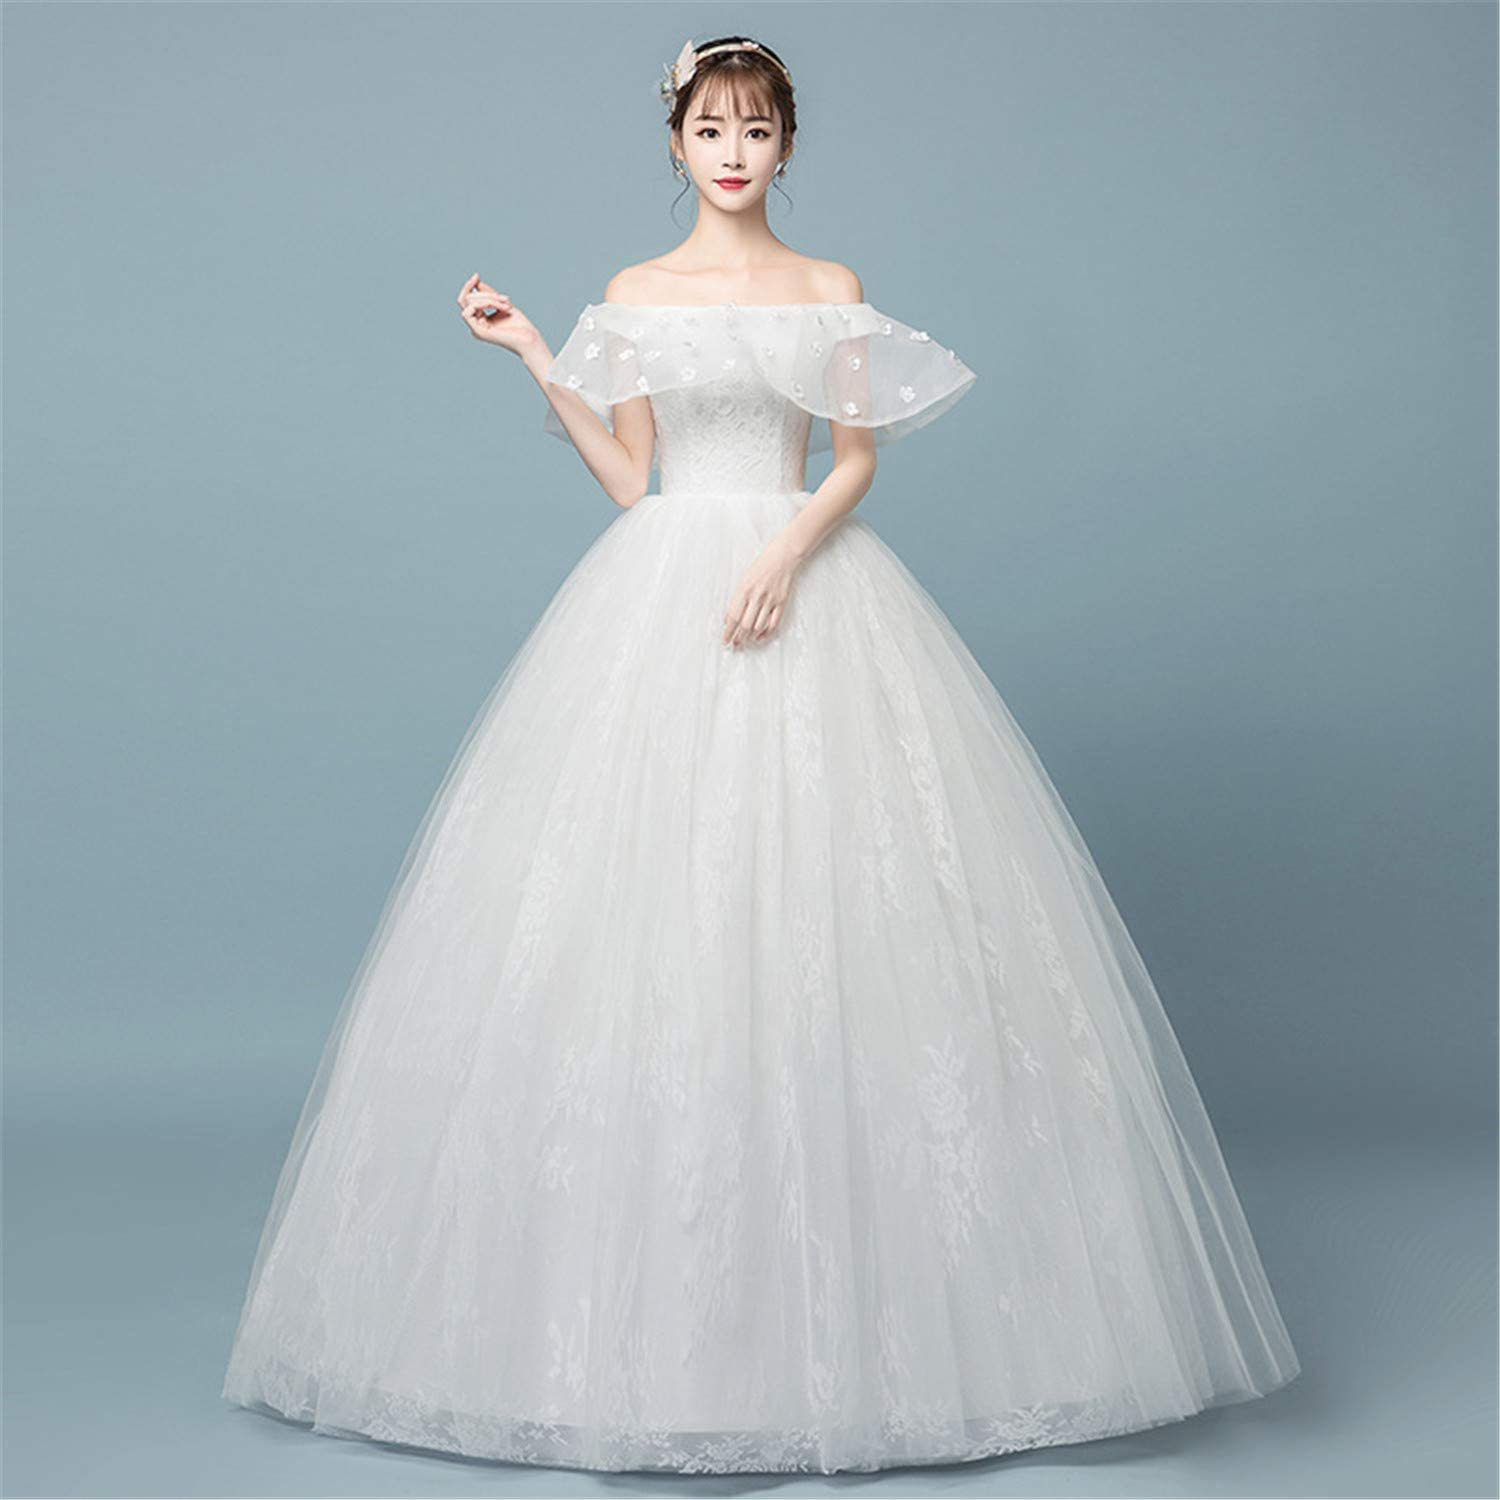 Women Wedding Dress Female Large Thin Simple White Floor Length Light Sexy Bridesmaid Long Clothes